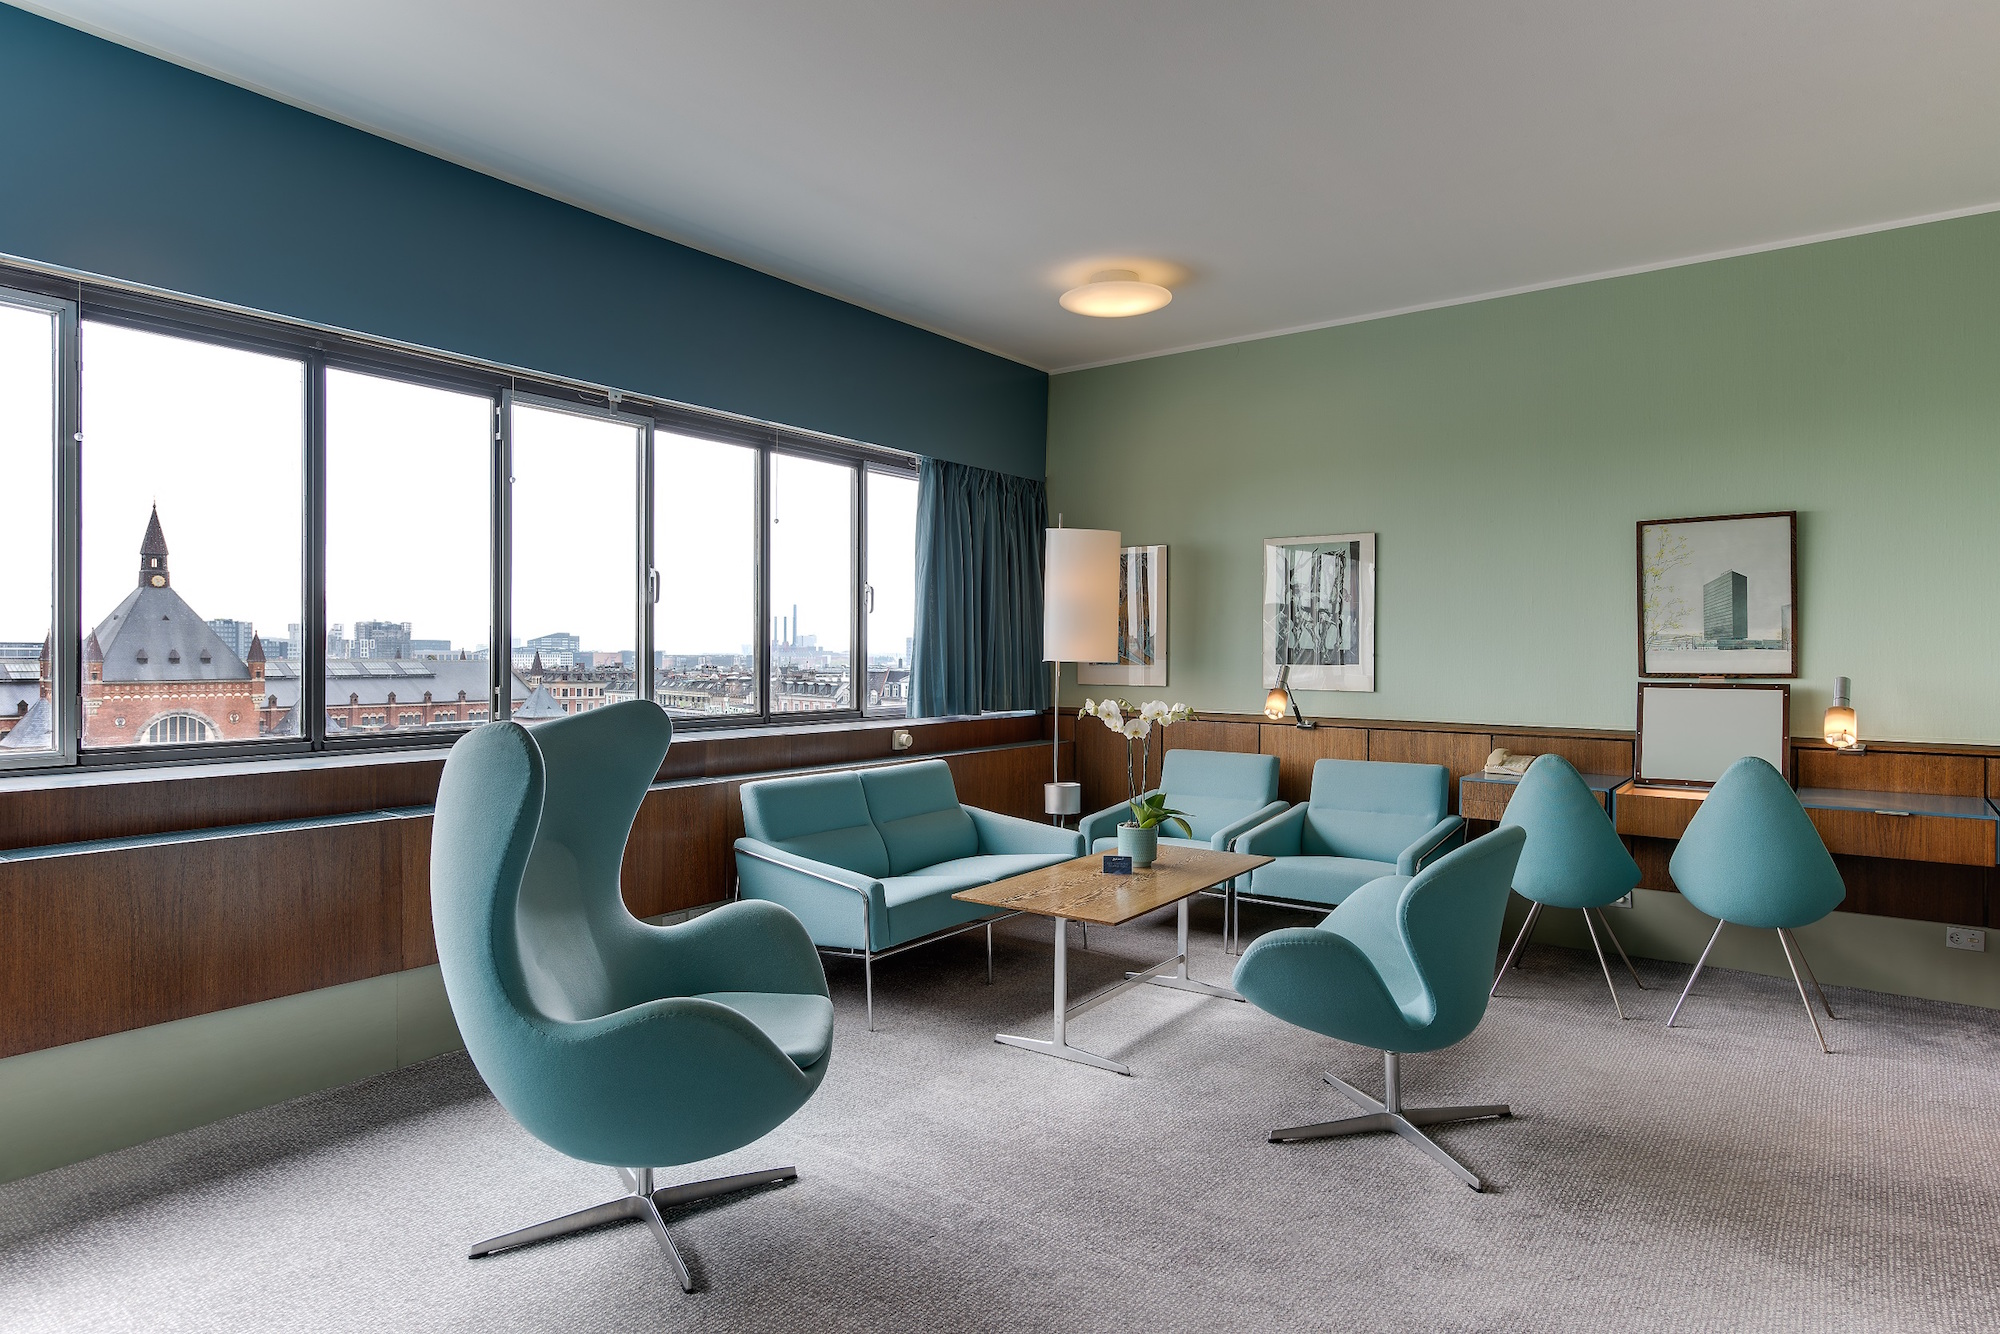 Room 606, the Arne Jacobsen Suite, at the Radisson Blu Royal Hotel in Copenhagen